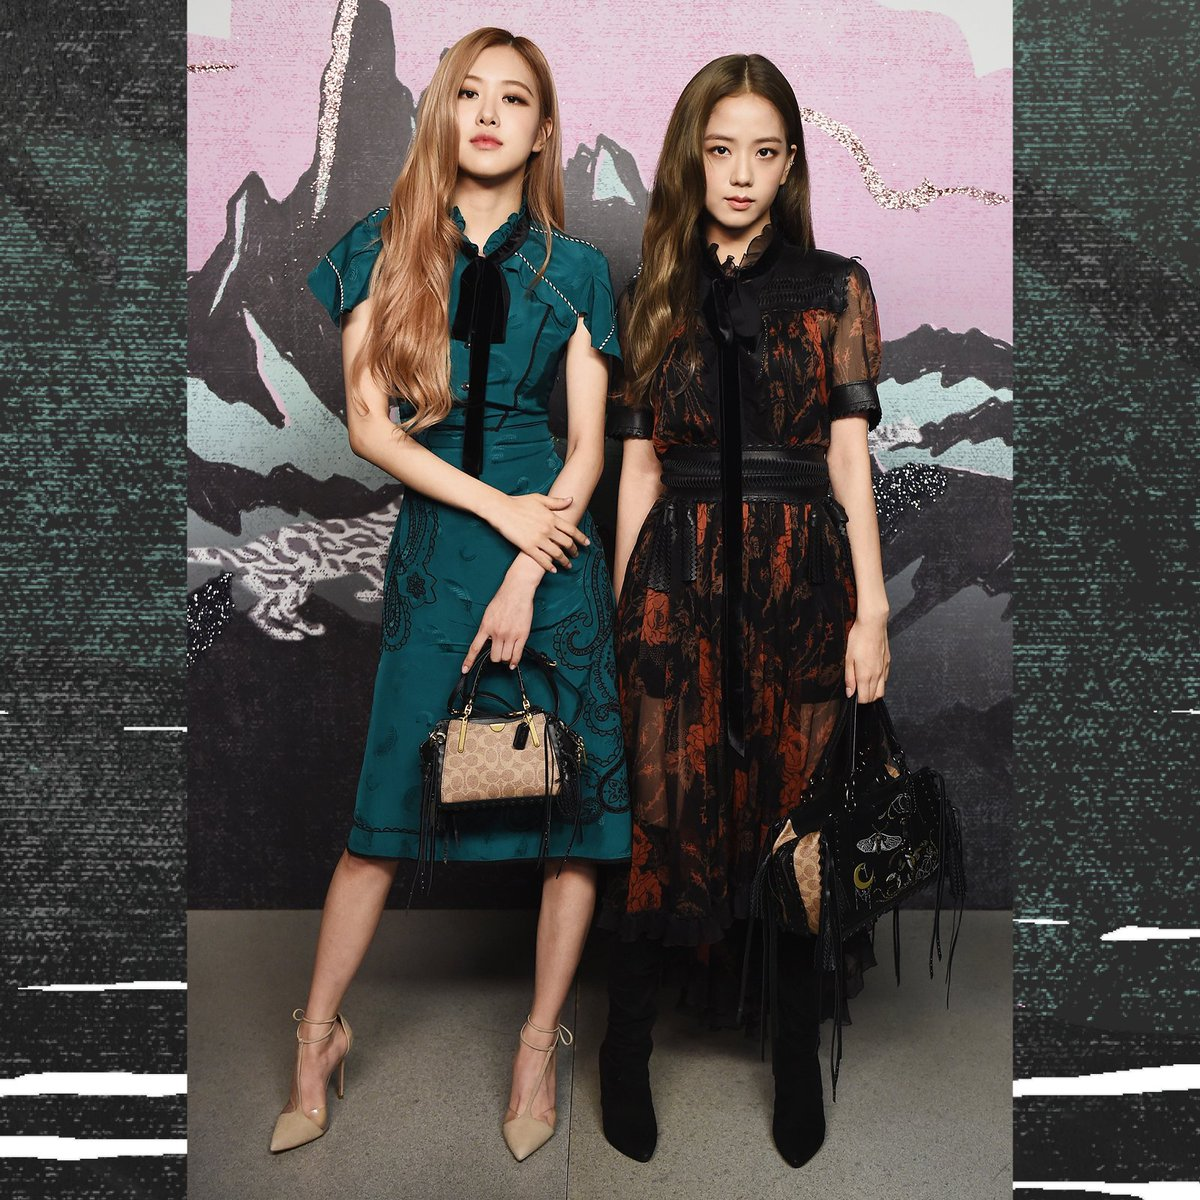 #BLACKPINK's Rosé and Jisoo, both carrying the Dreamer bag, pictured earlier today at the #CoachSS19 show. #CoachNY